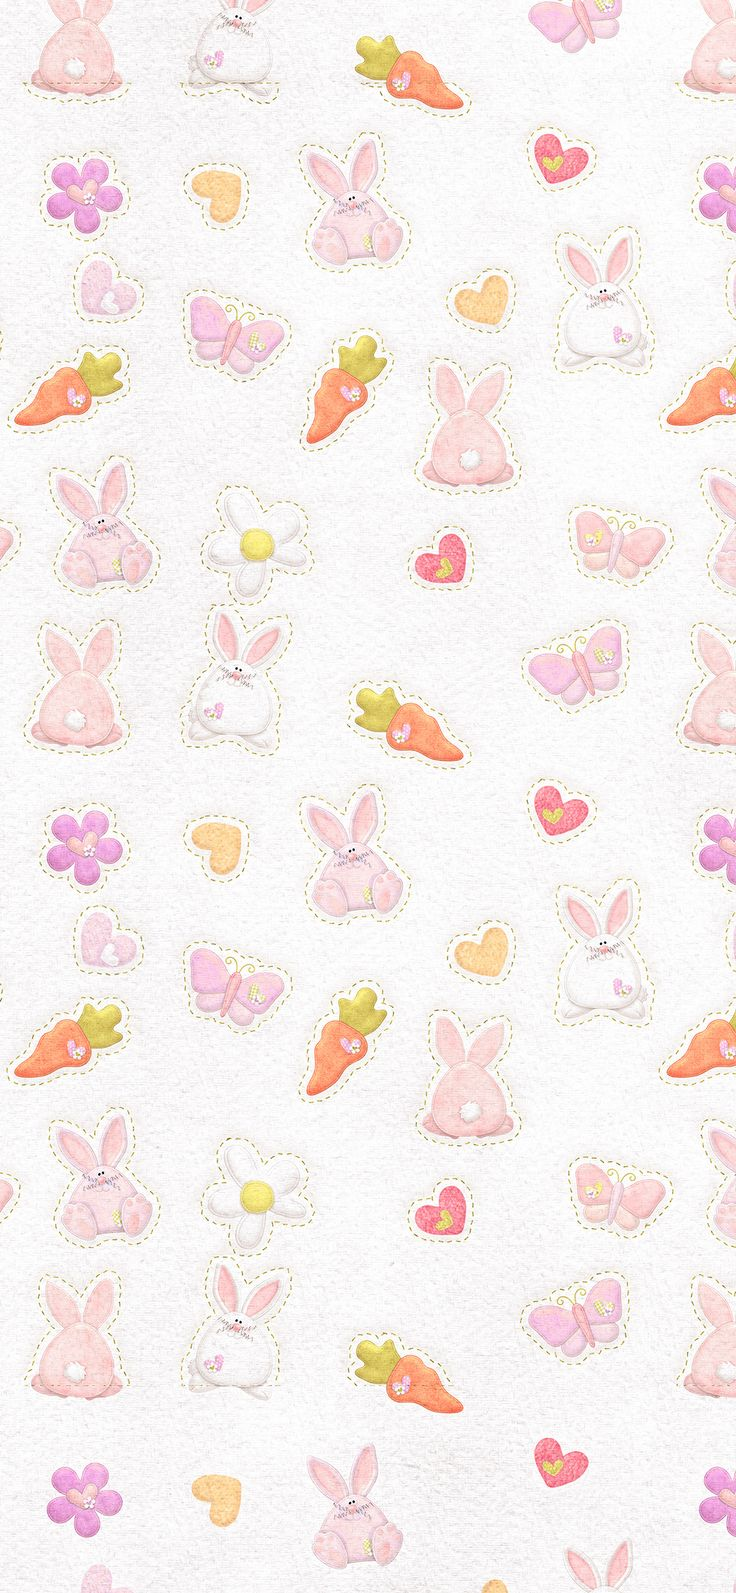 Iphone X Wallpaper Vp06 Cute Rabbit Chracter Pattern Red Via